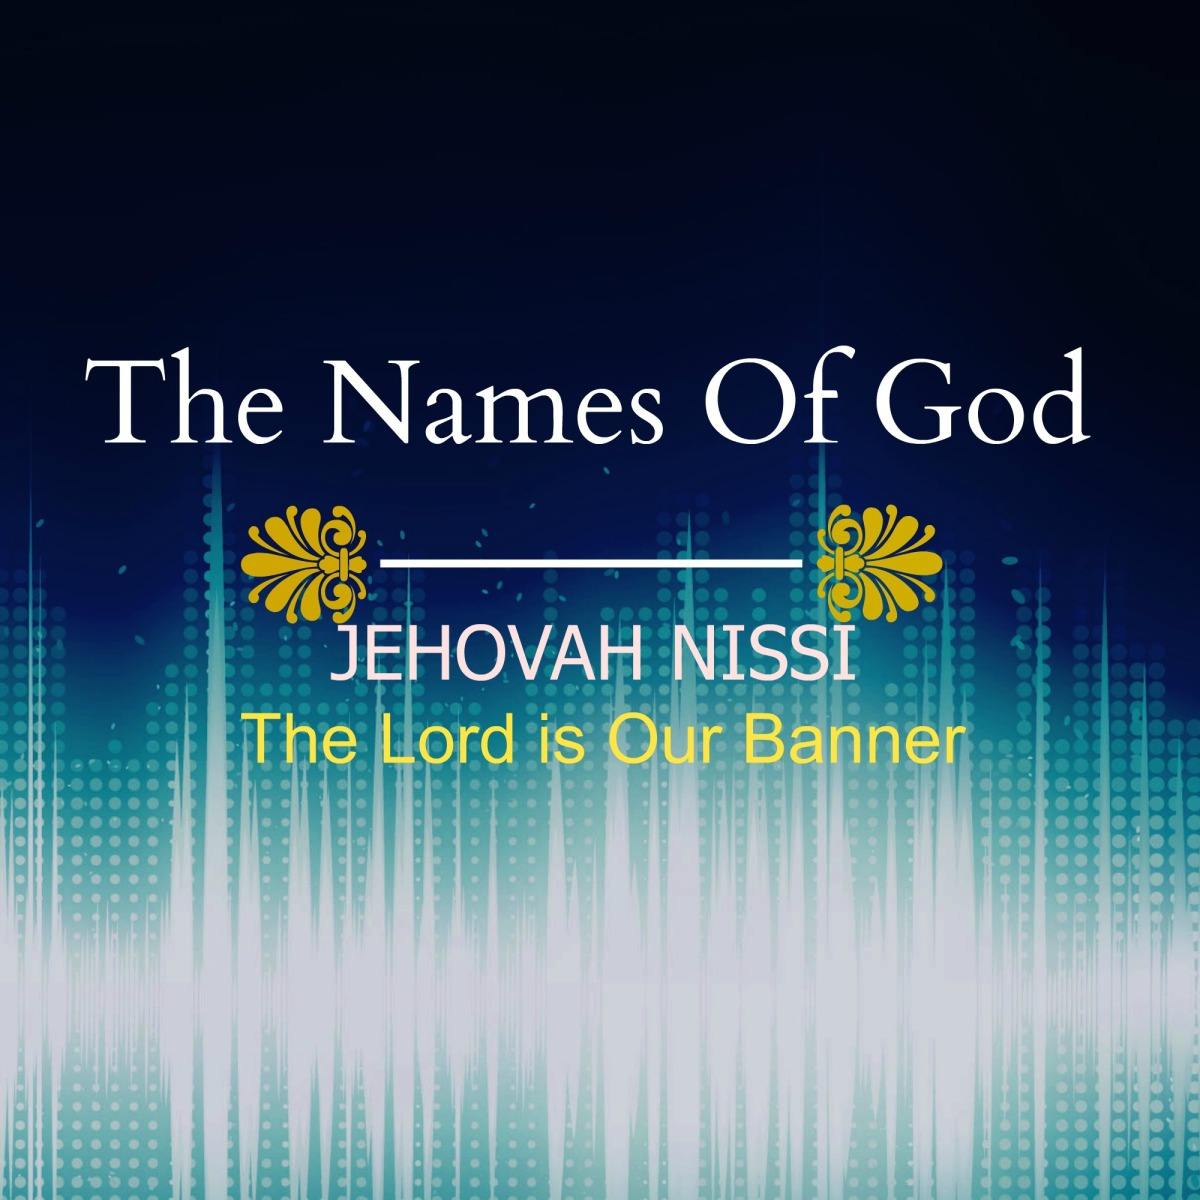 Names of God- JEHOVAH NISSI | Six Measures Of Barley